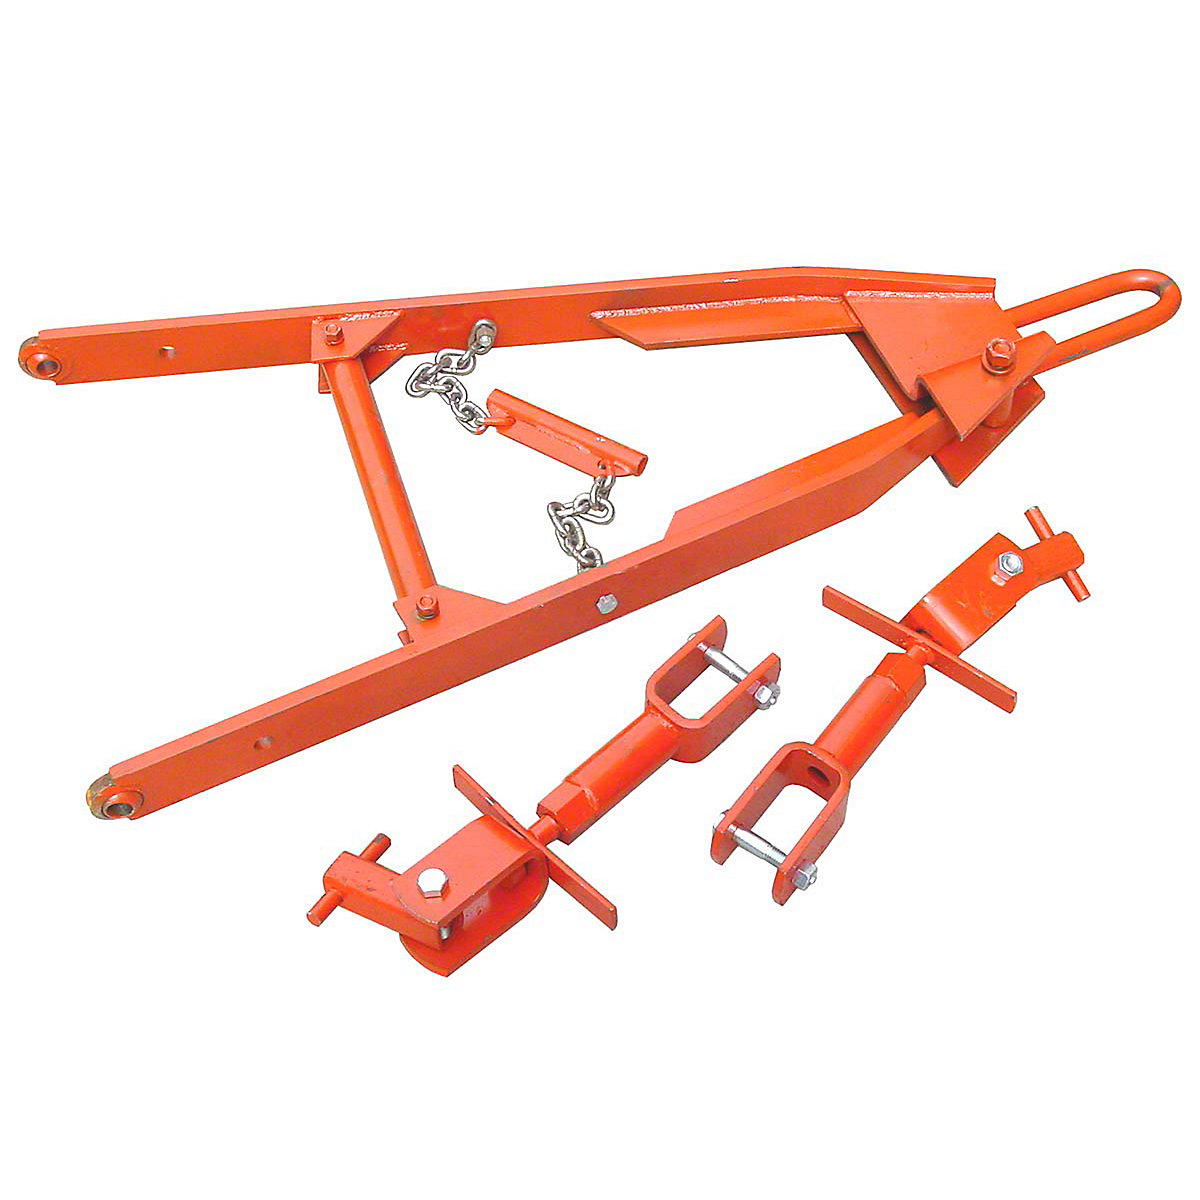 Ih 340 Tractor 3pt Telescoping Lift Arms : Acs point hitch conversion kit